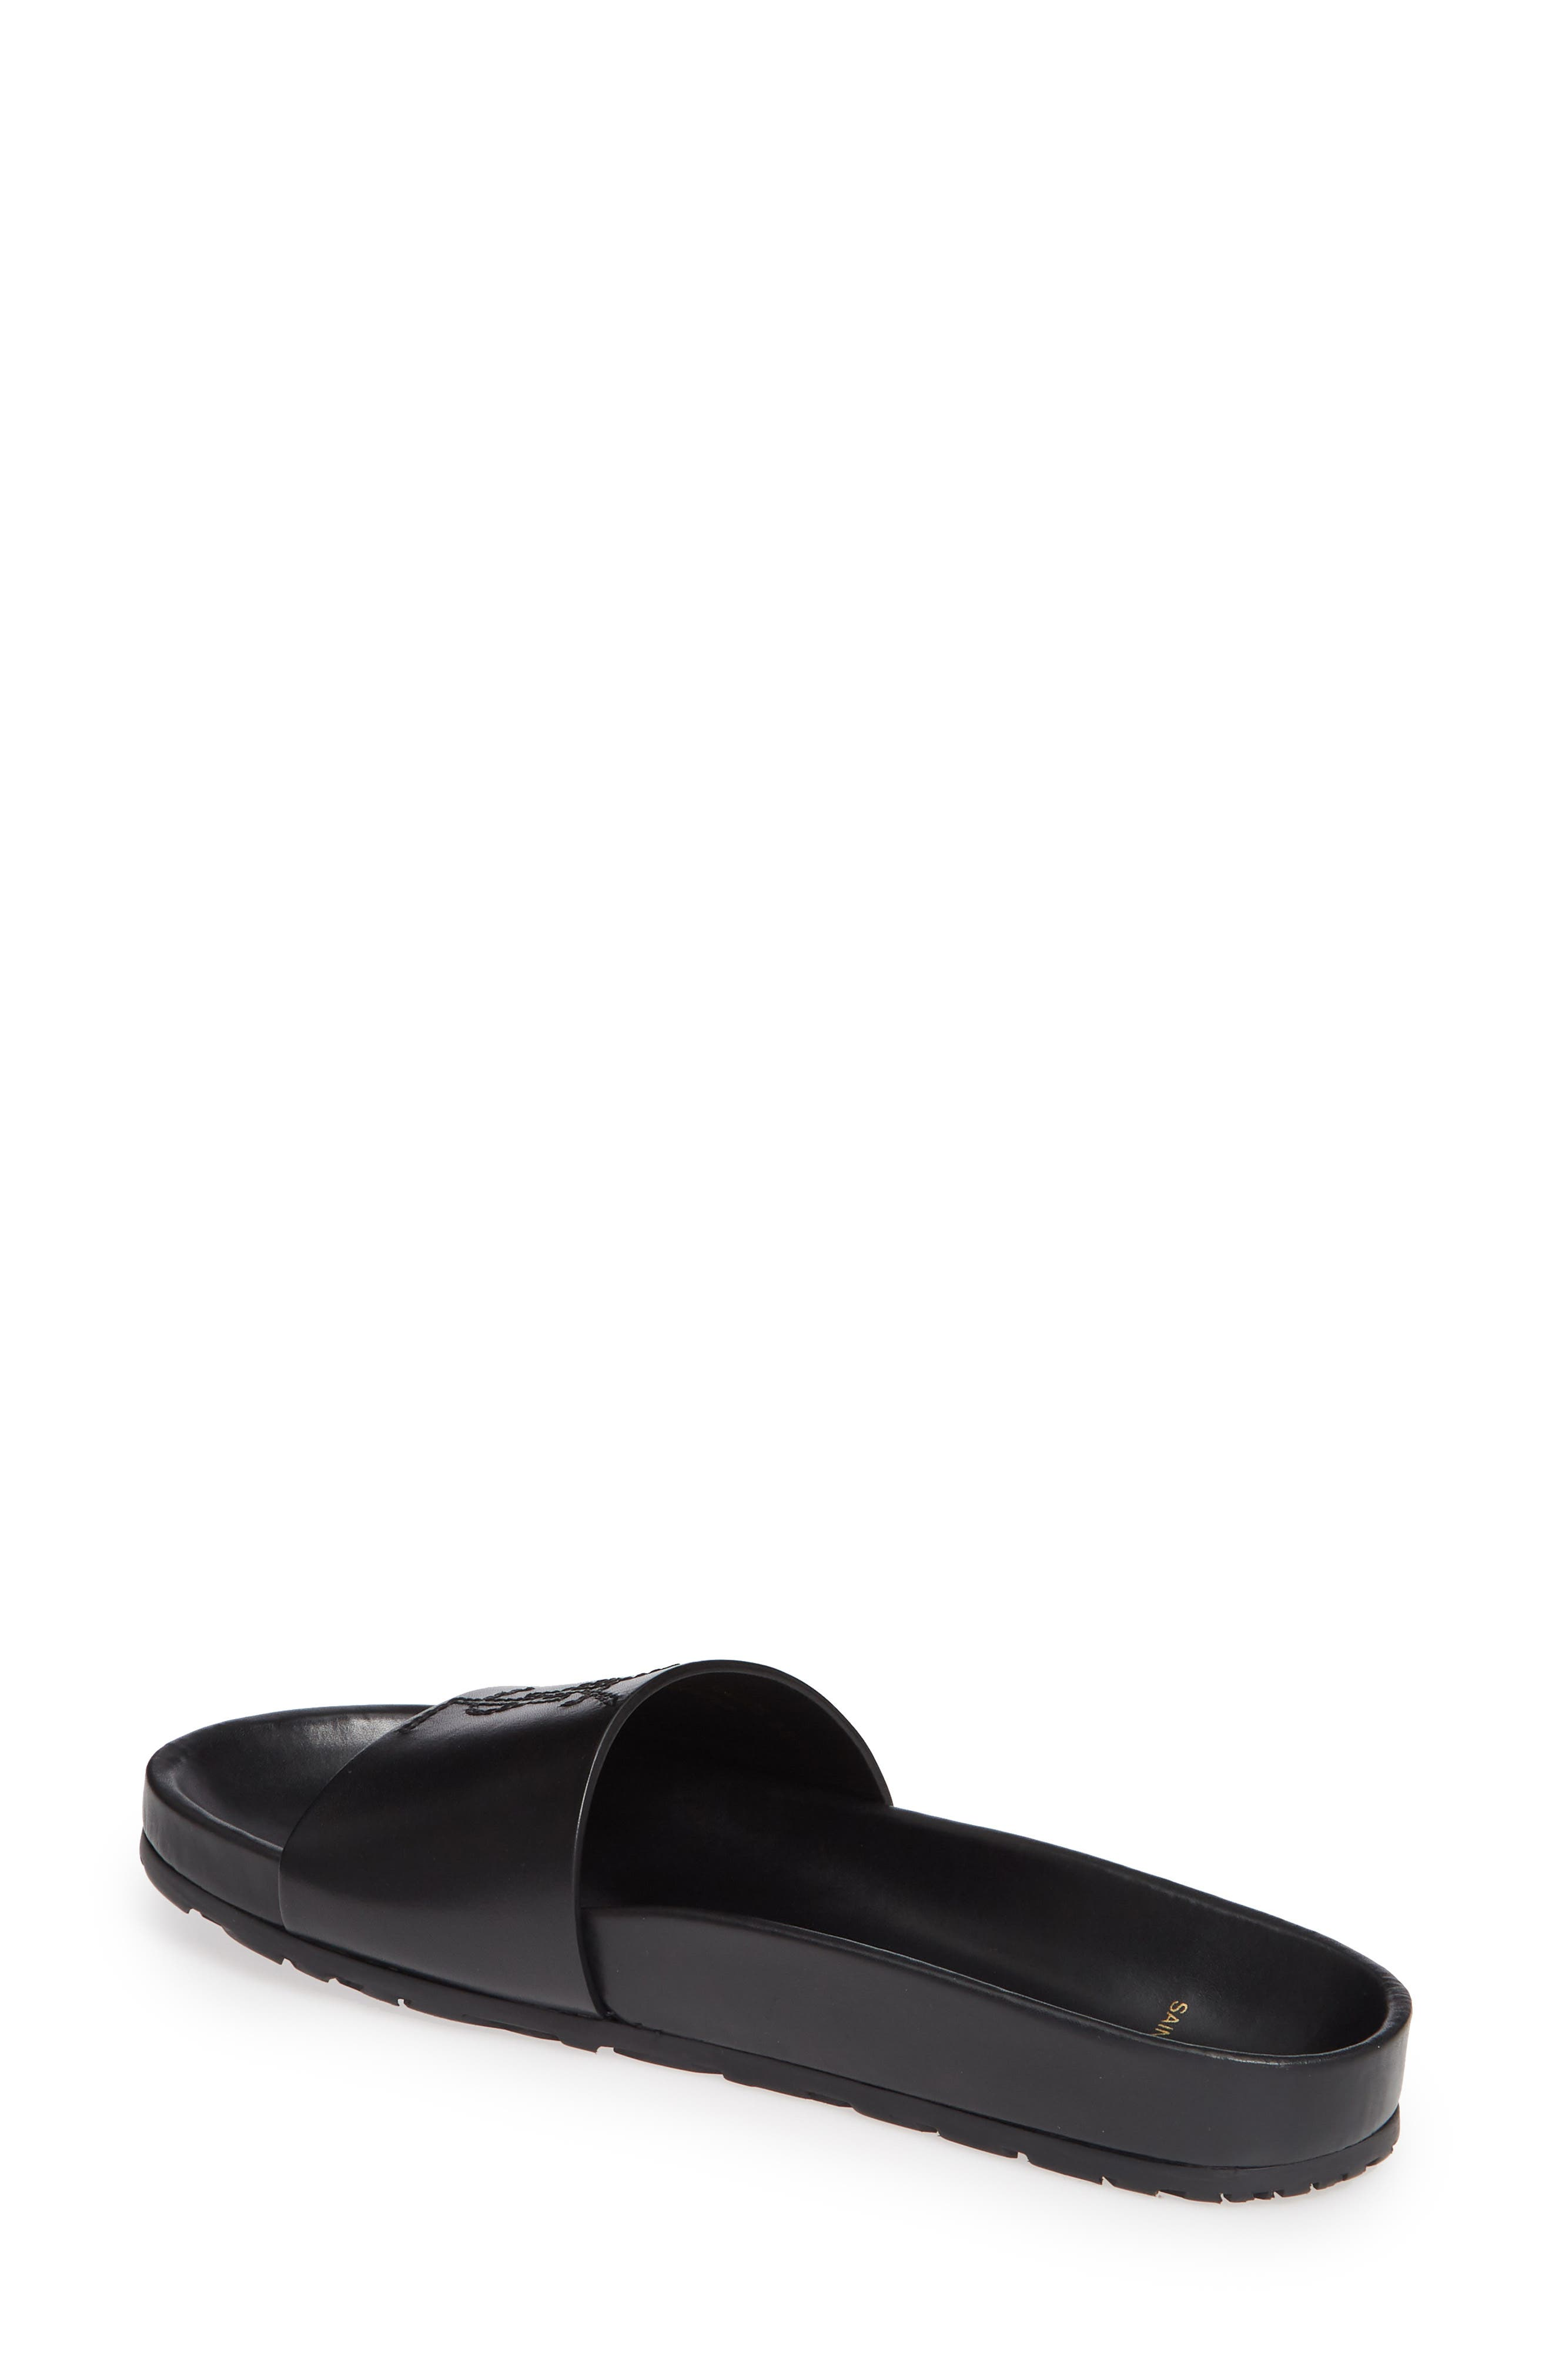 SAINT LAURENT, Jimmy Logo Slide Sandal, Alternate thumbnail 2, color, BLACK LEATHER